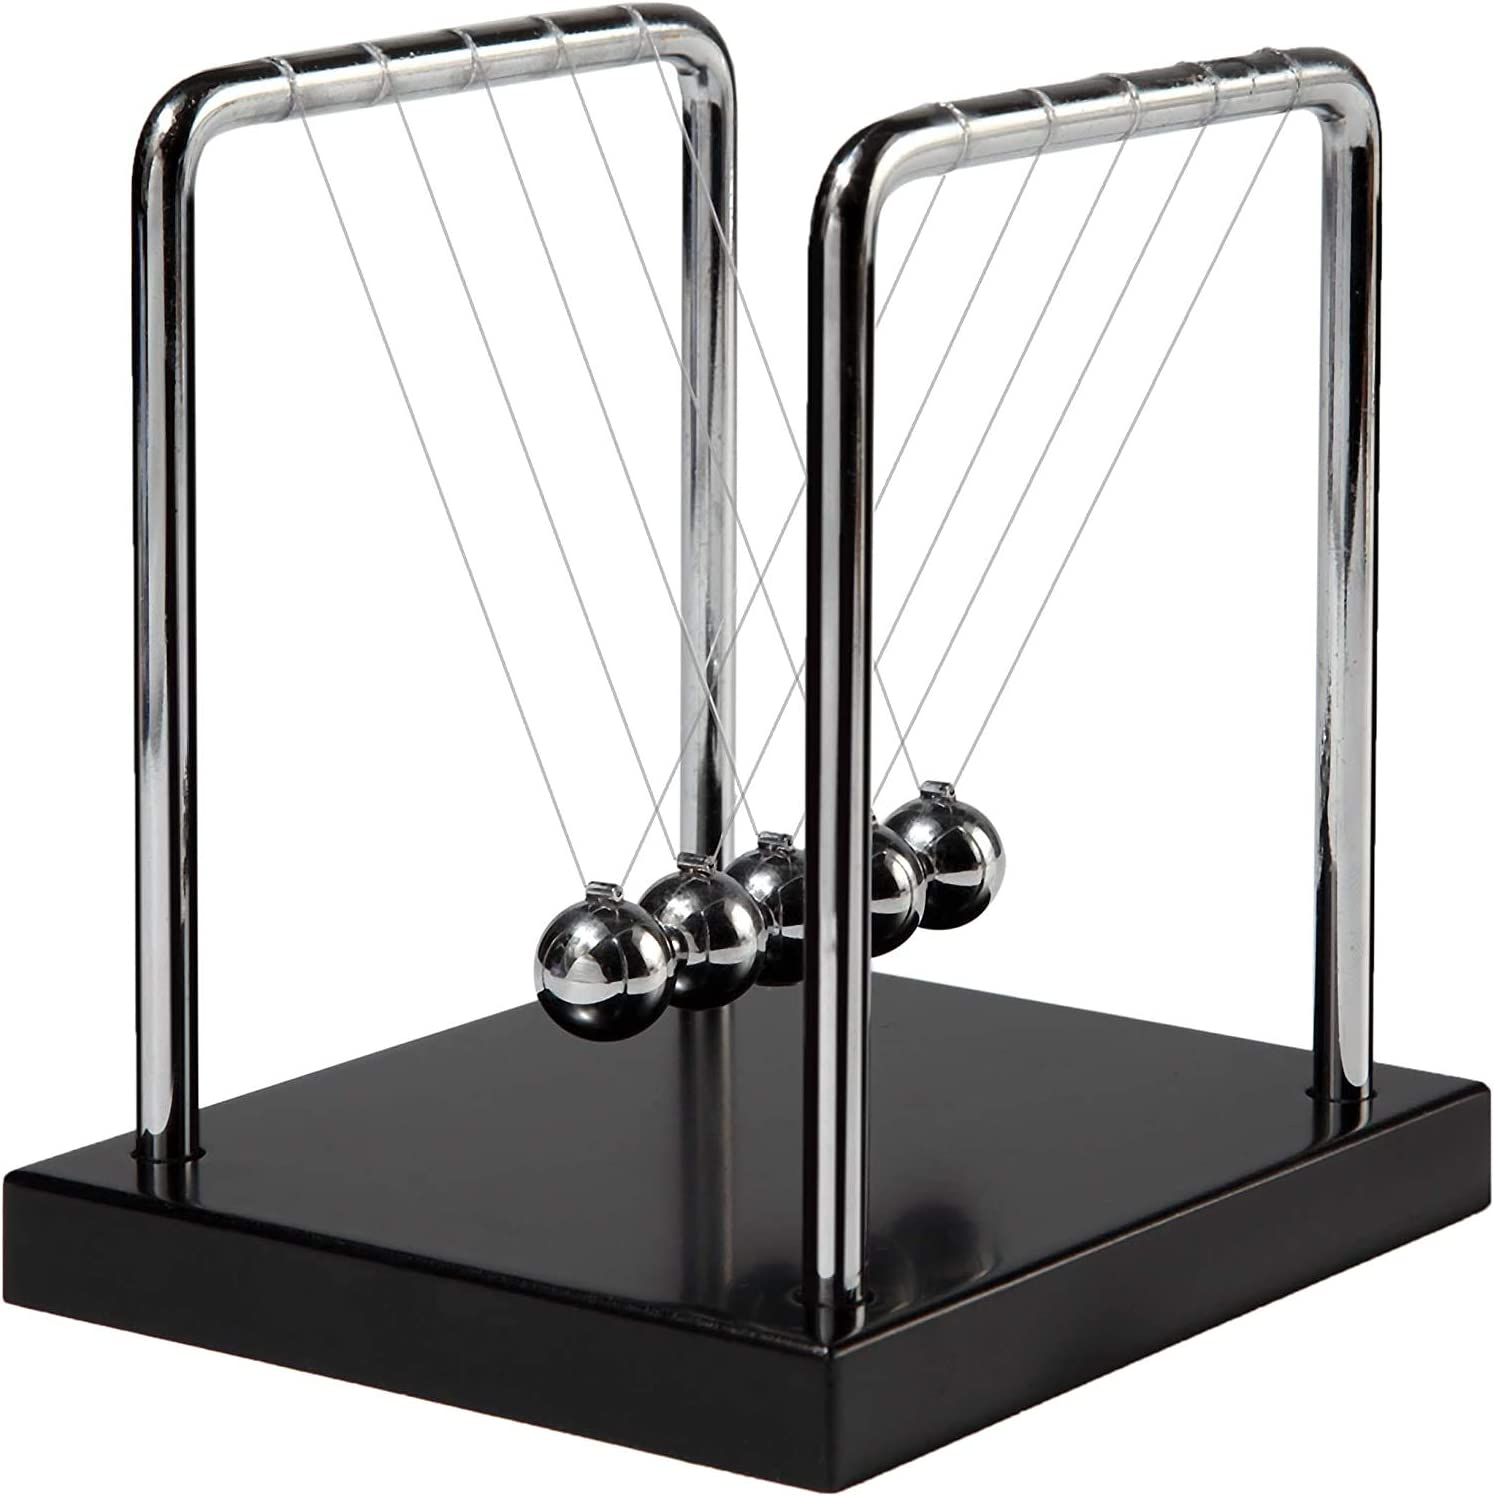 Newtons Cradle Balance Balls with Black Wooden Base Fun Science Physics Learning Desk Toys Fun Gadget 5 Pendulum Balls for Office and Home Decoration-Medium Wooden Black